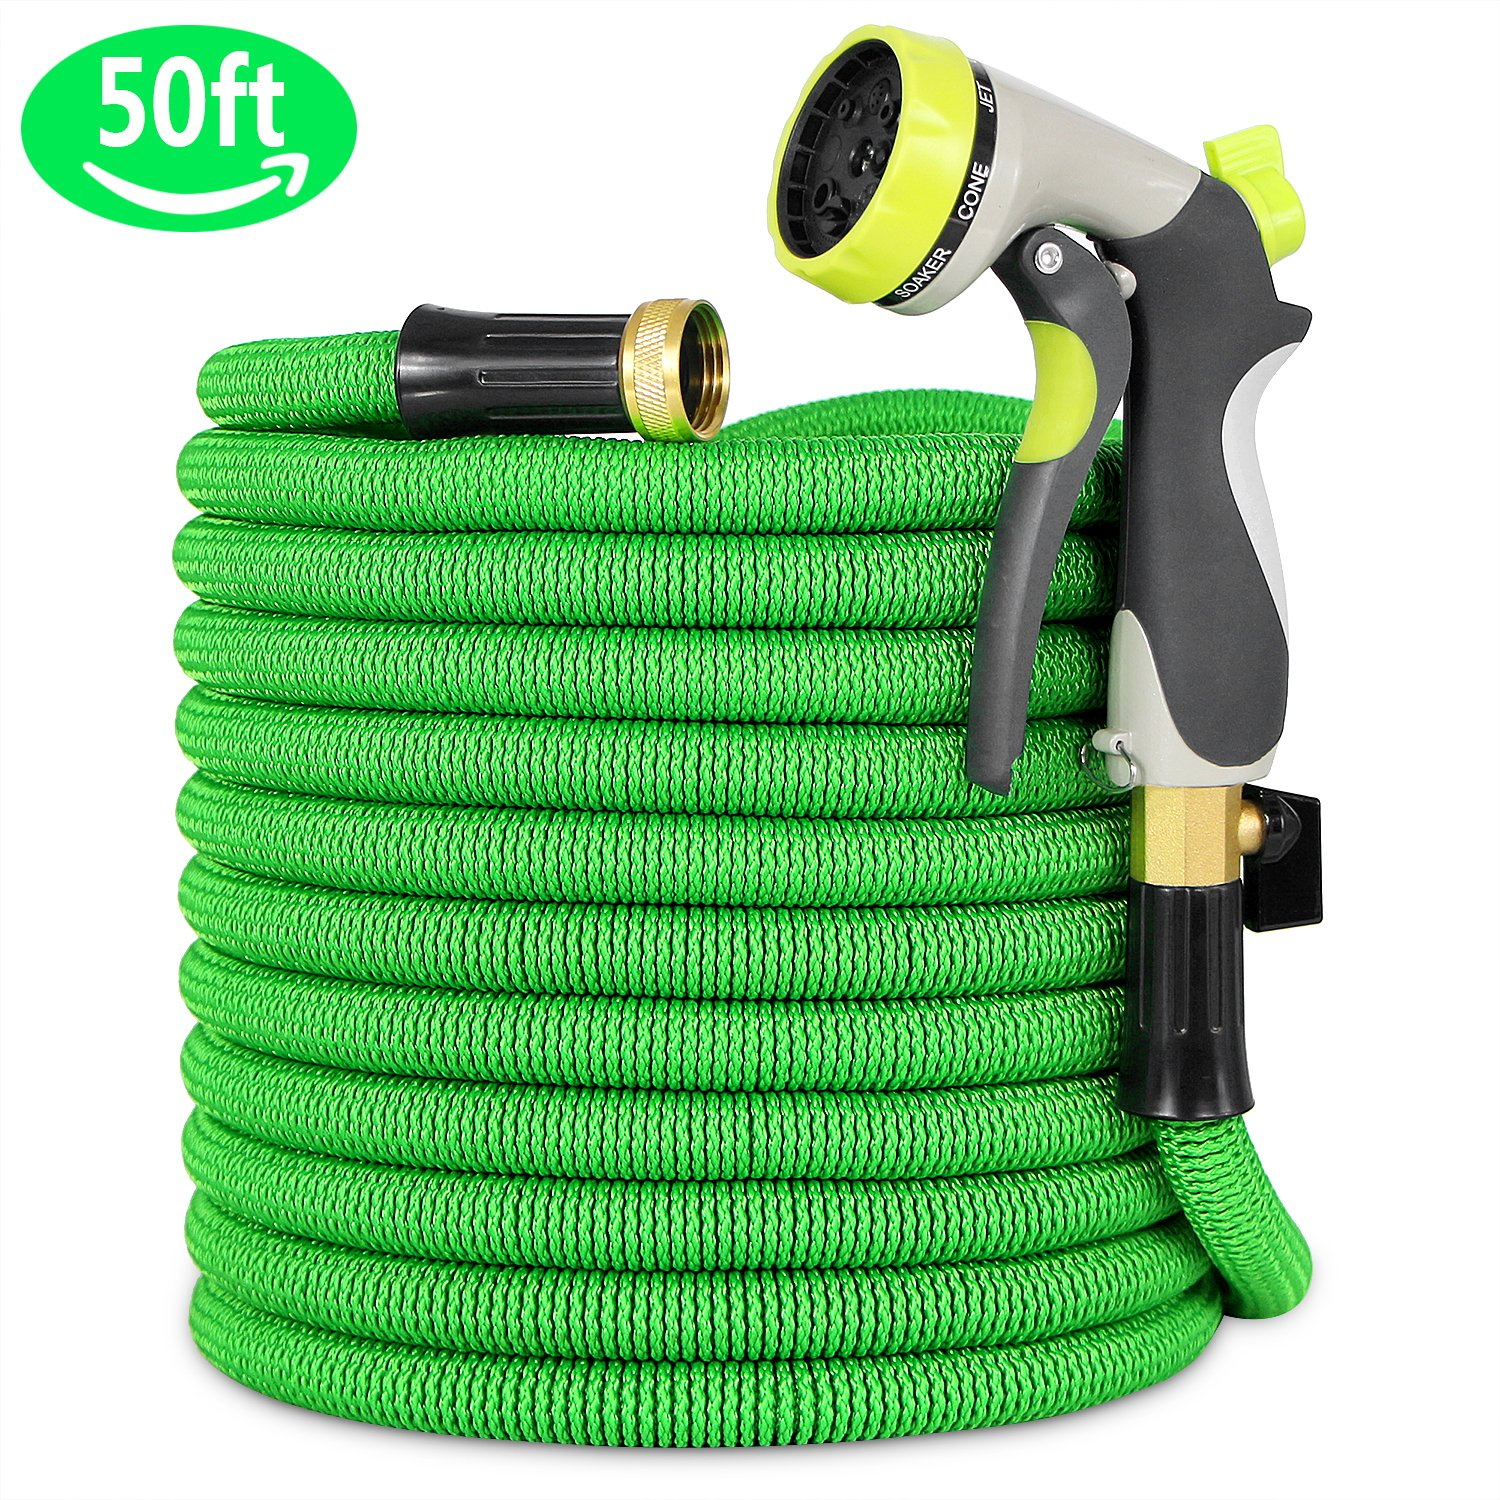 Garden Hose, 50ft Green Lightweight Expandable Water Hose, Expanding Hose with 8 Fuction Nozzle Sprayer, Solid Brass Connector, Double Latex Inner Tube, for Car Washing, Garden Watering